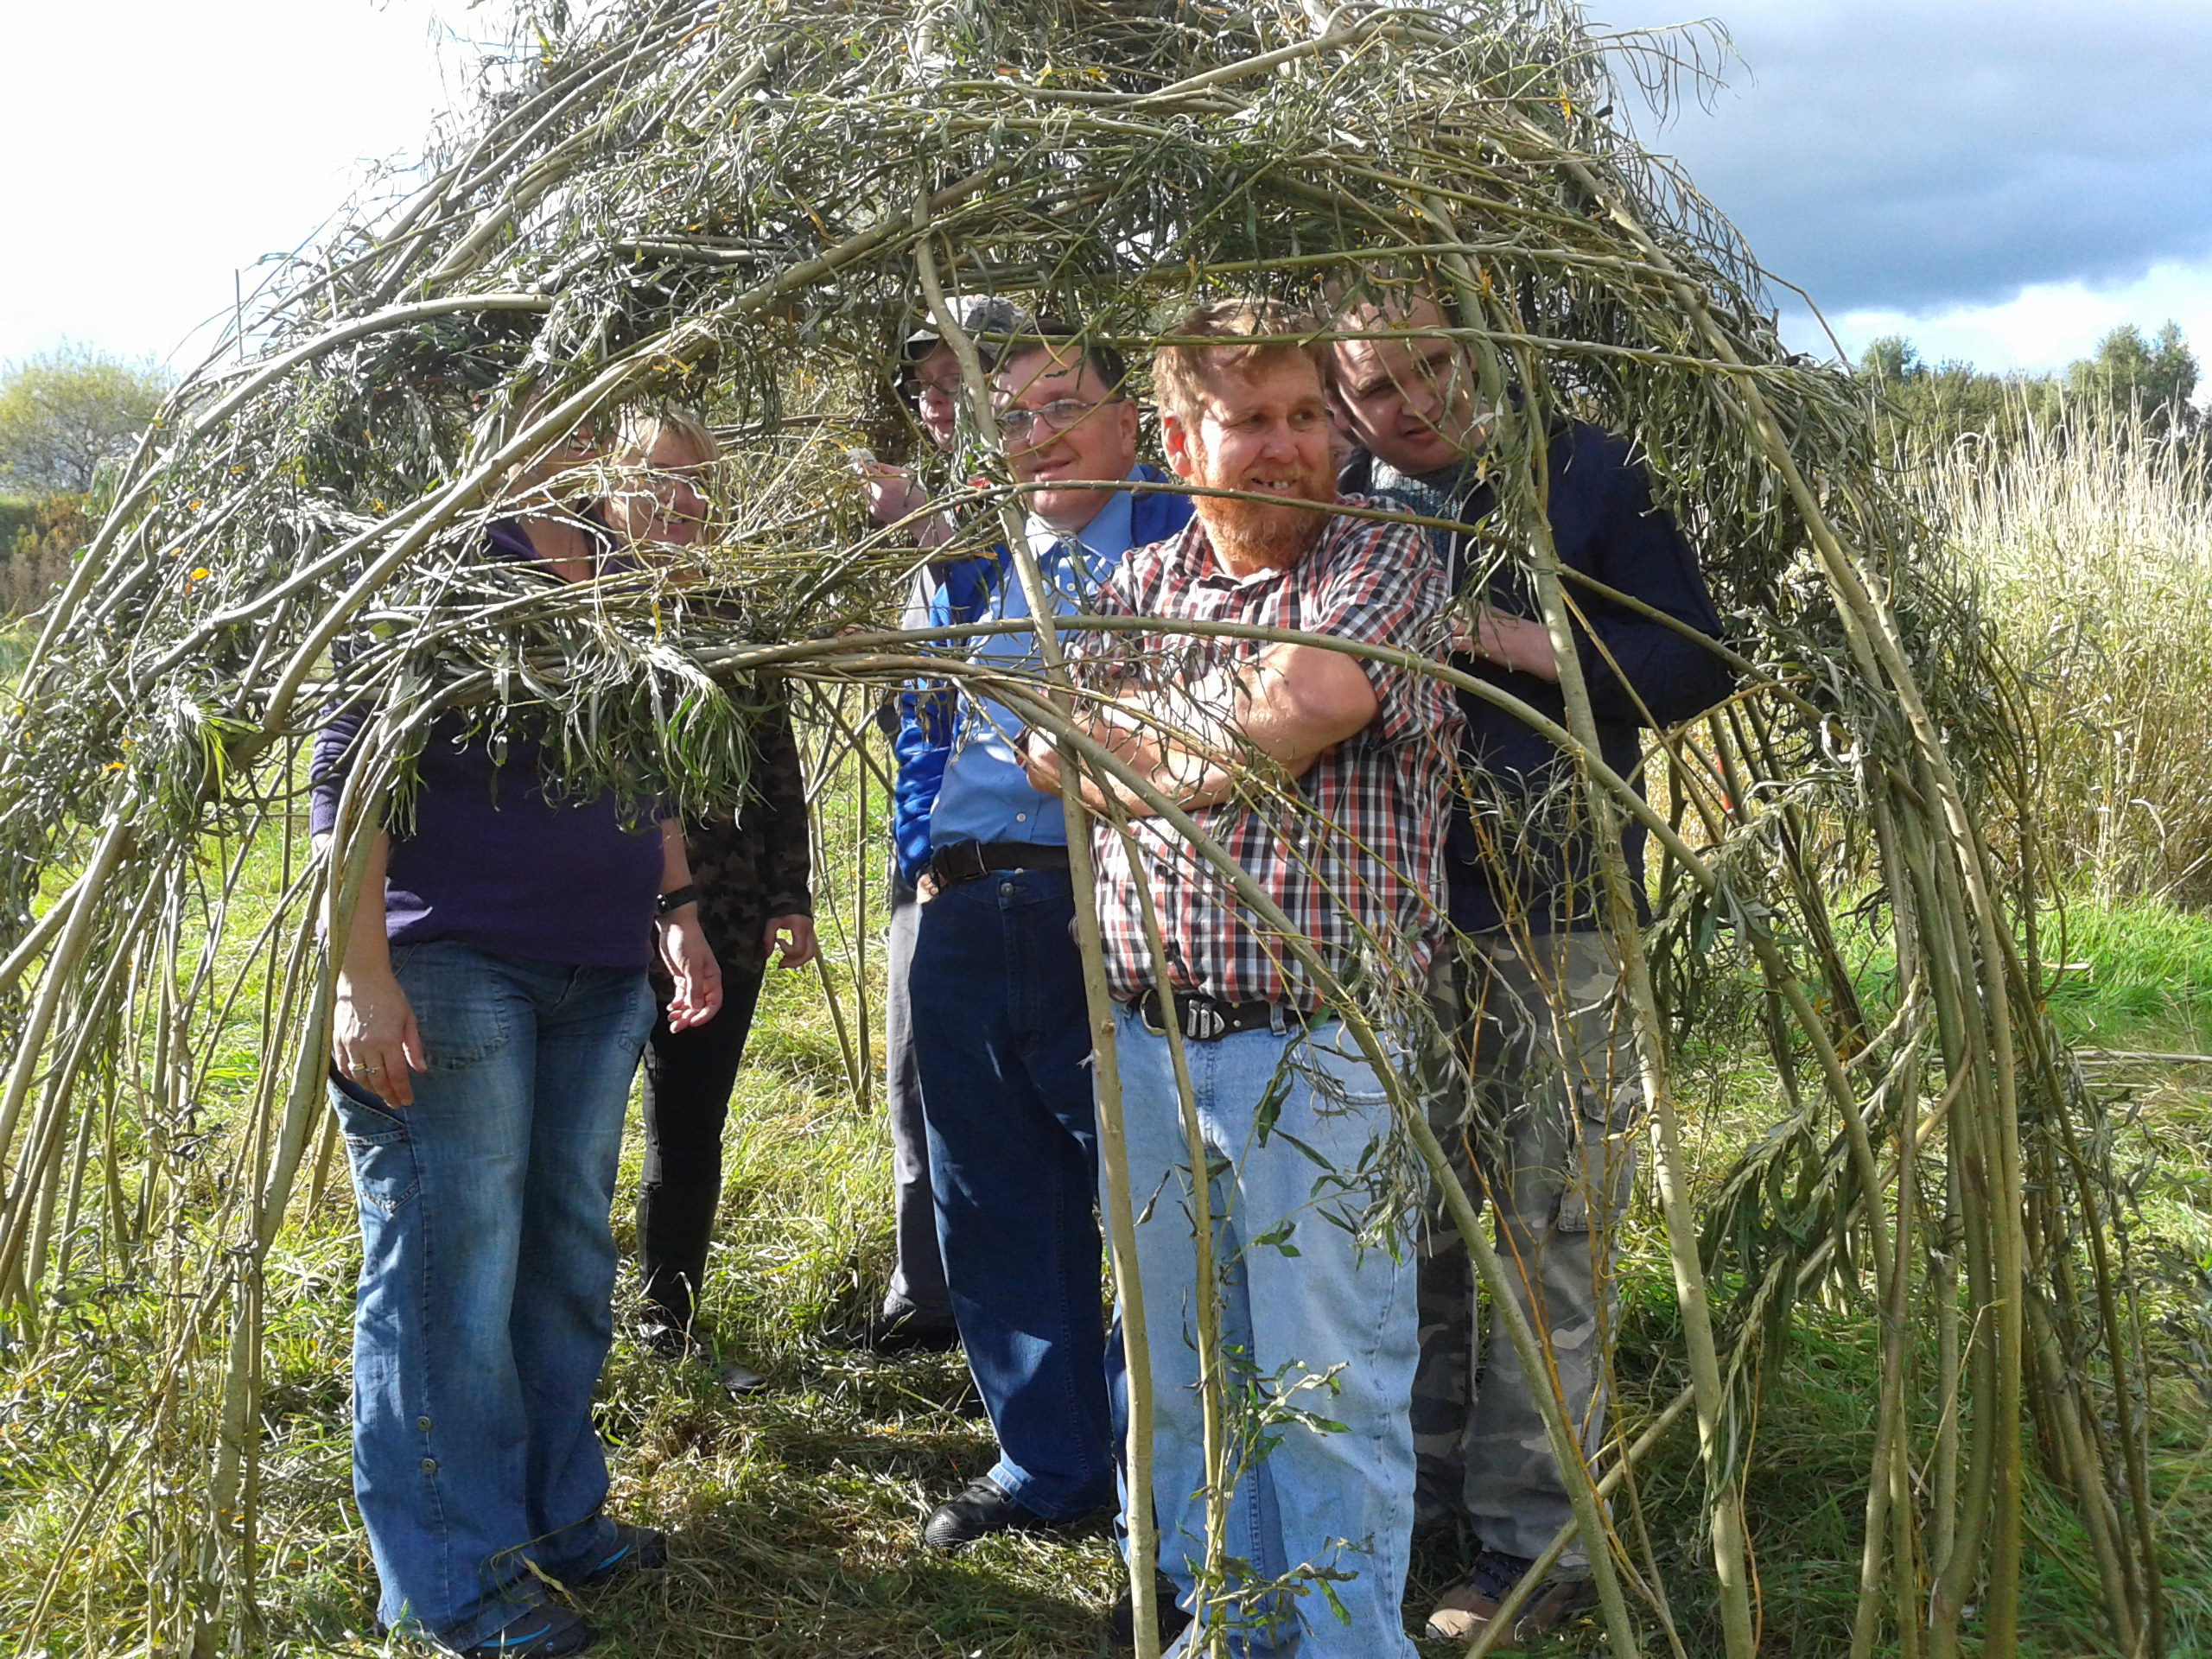 Willow weaving at Ashton's Field